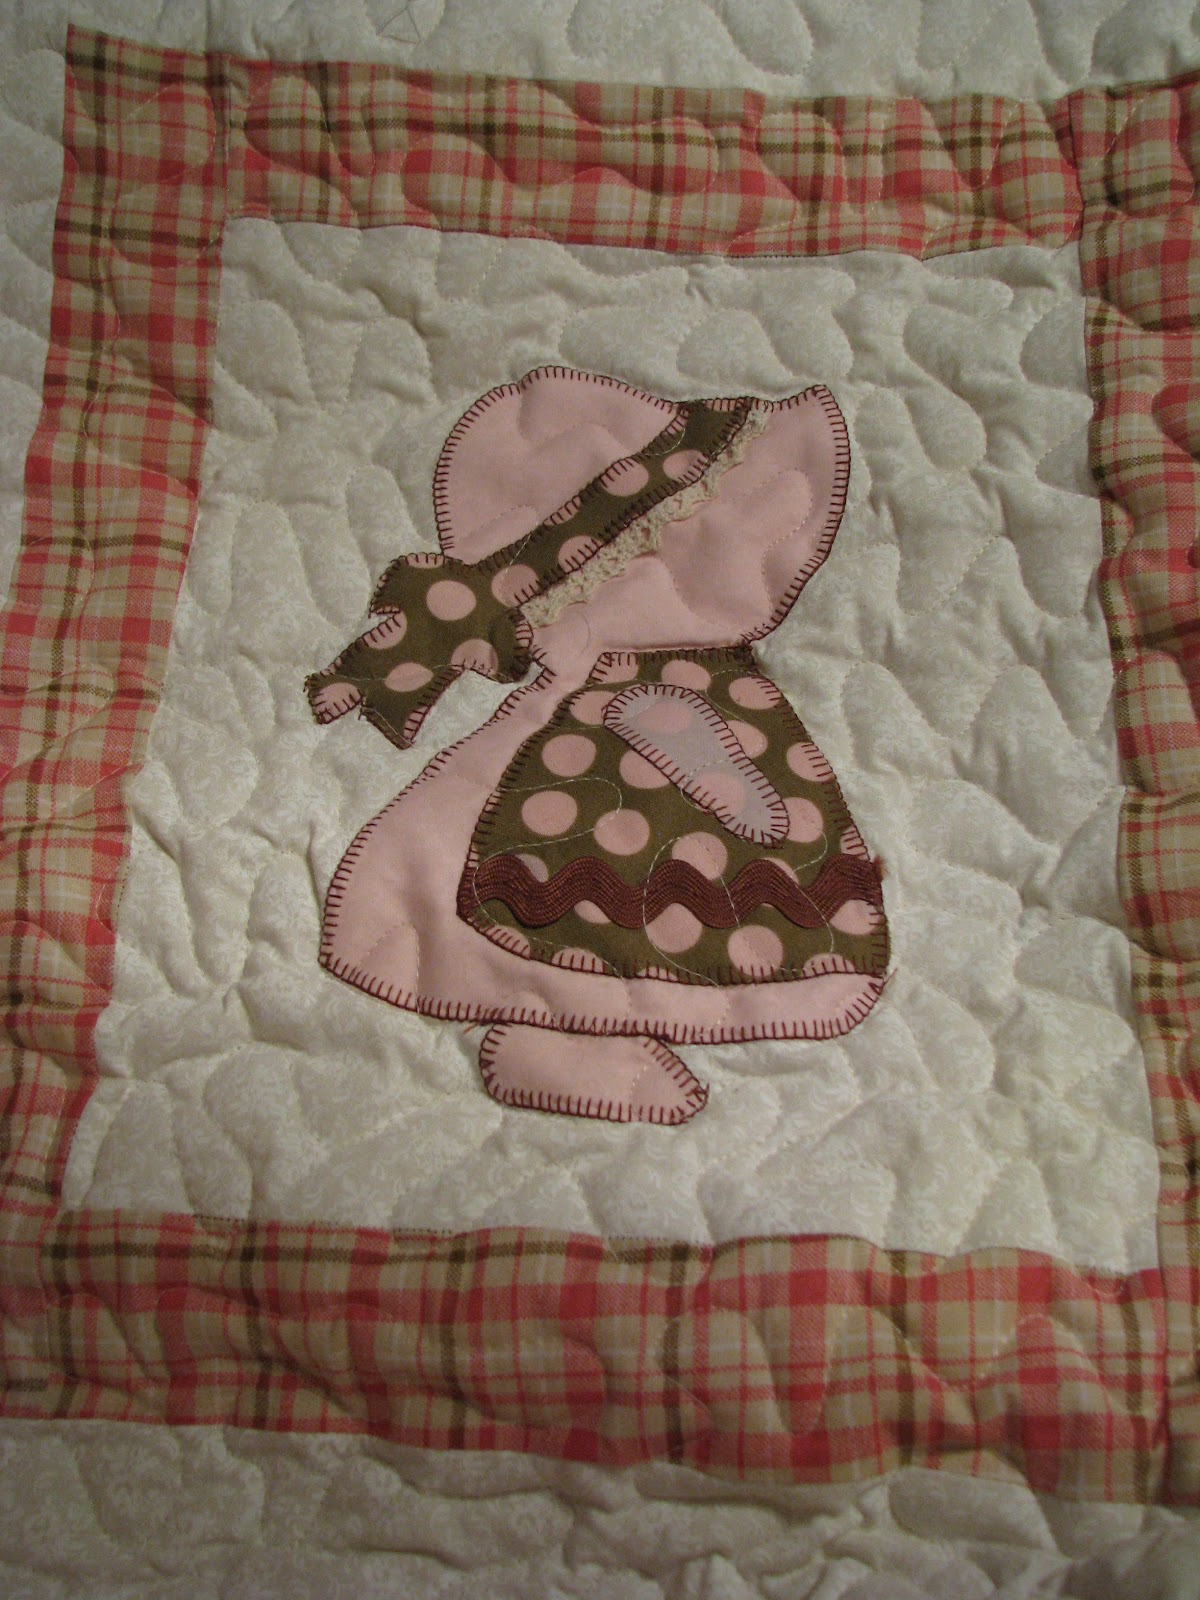 Sew Let S Get Creative Bosskut Gazelle Quilting